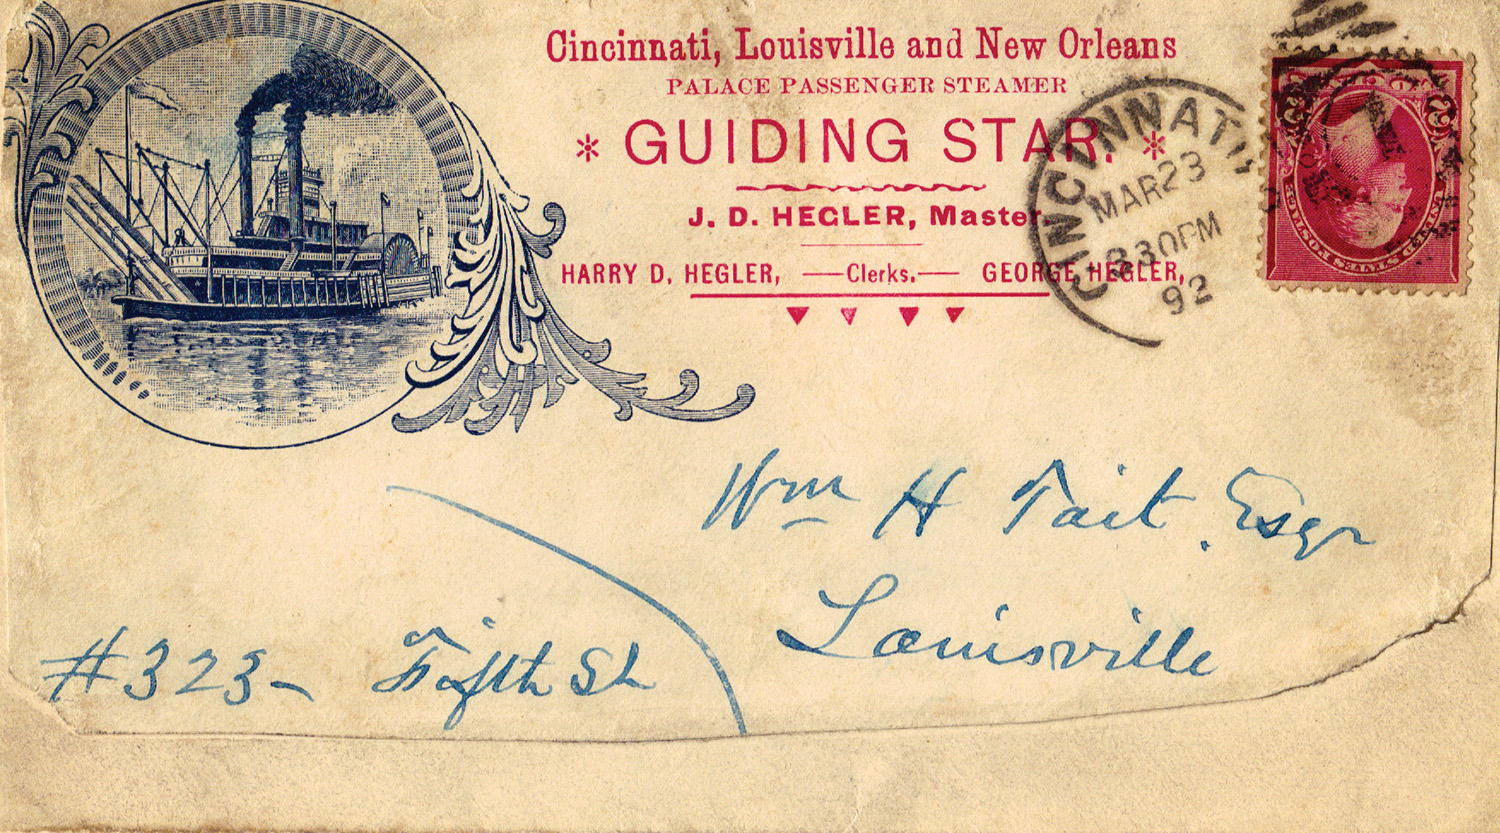 A cover, postmarked at Cincinnati in 1892, from the Guiding Star.